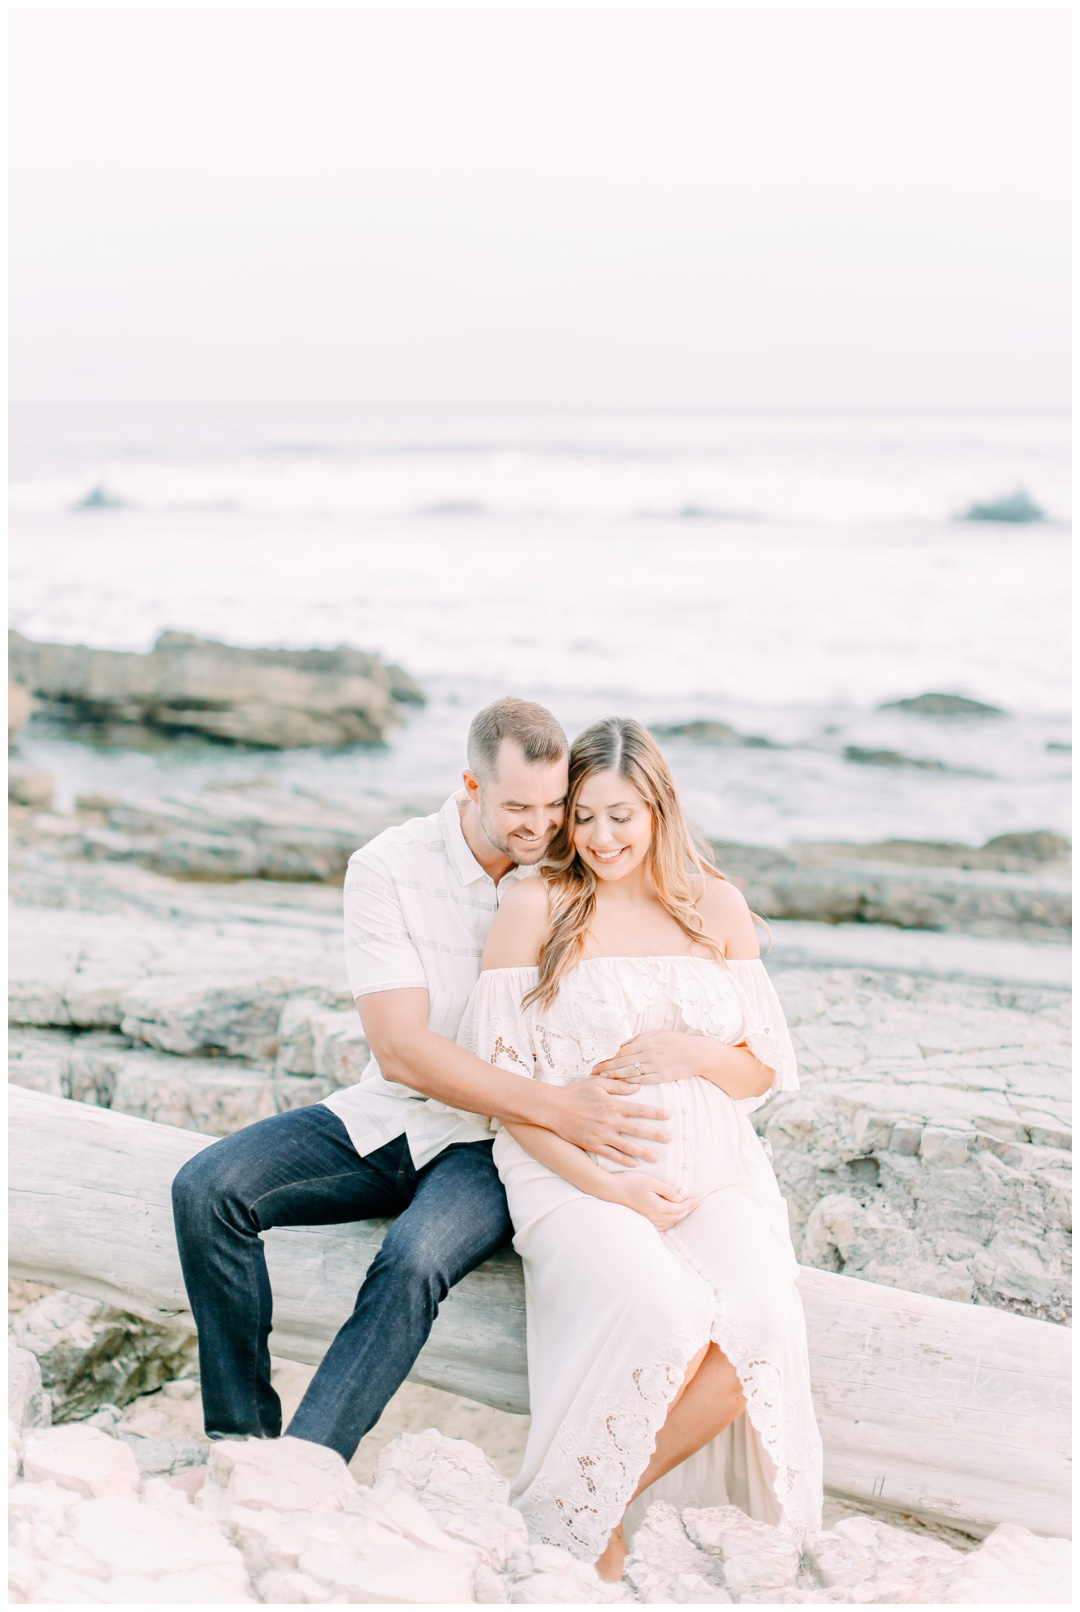 Newport_Beach_Maternity_Photographer_Beach_Maternity_Photography_Cori_Kleckner_Photography_1034.jpg